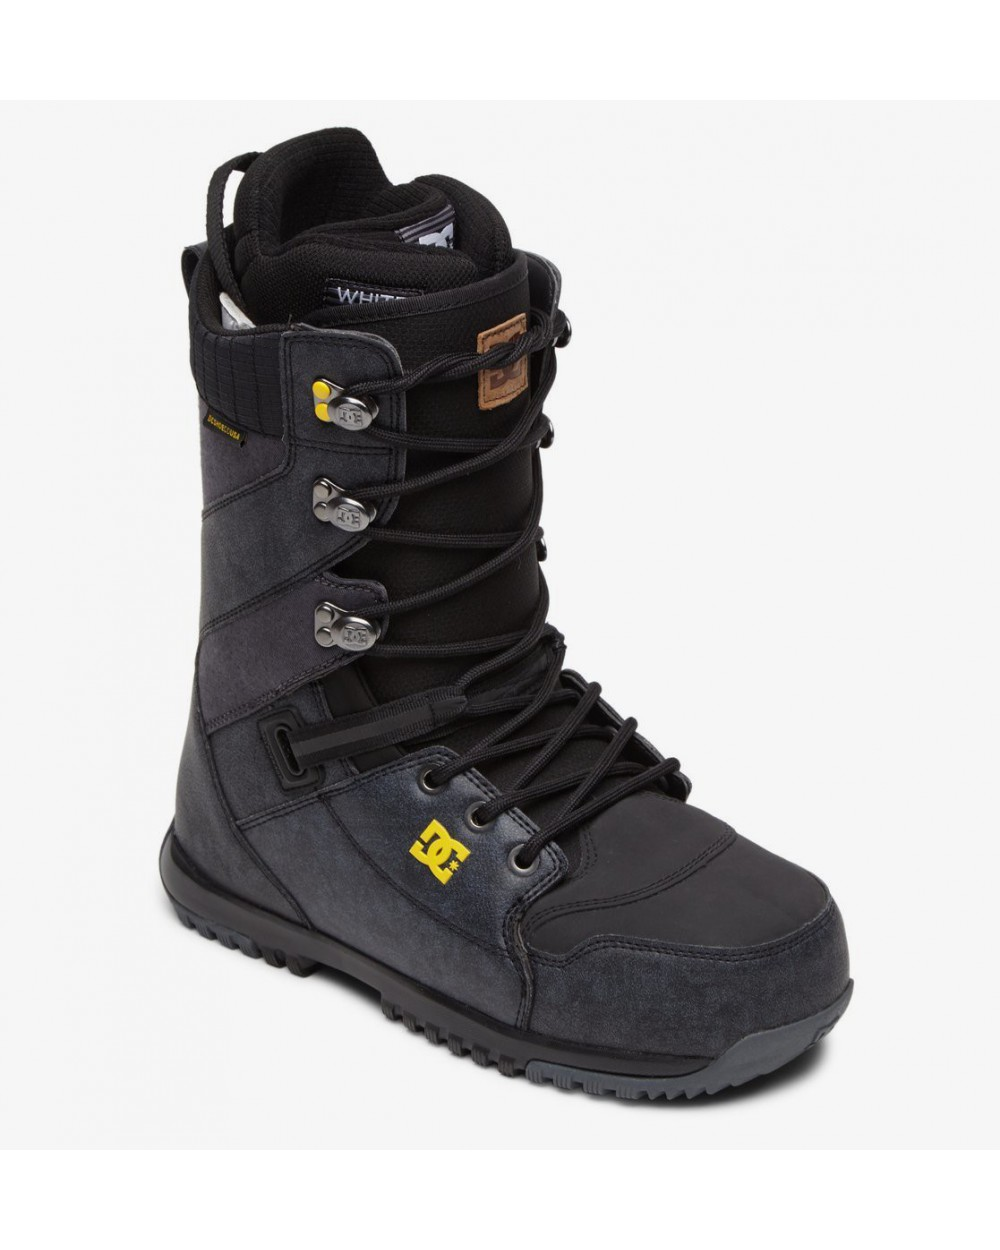 Dc Mutiny Lace Up Snowboard Boots - Black